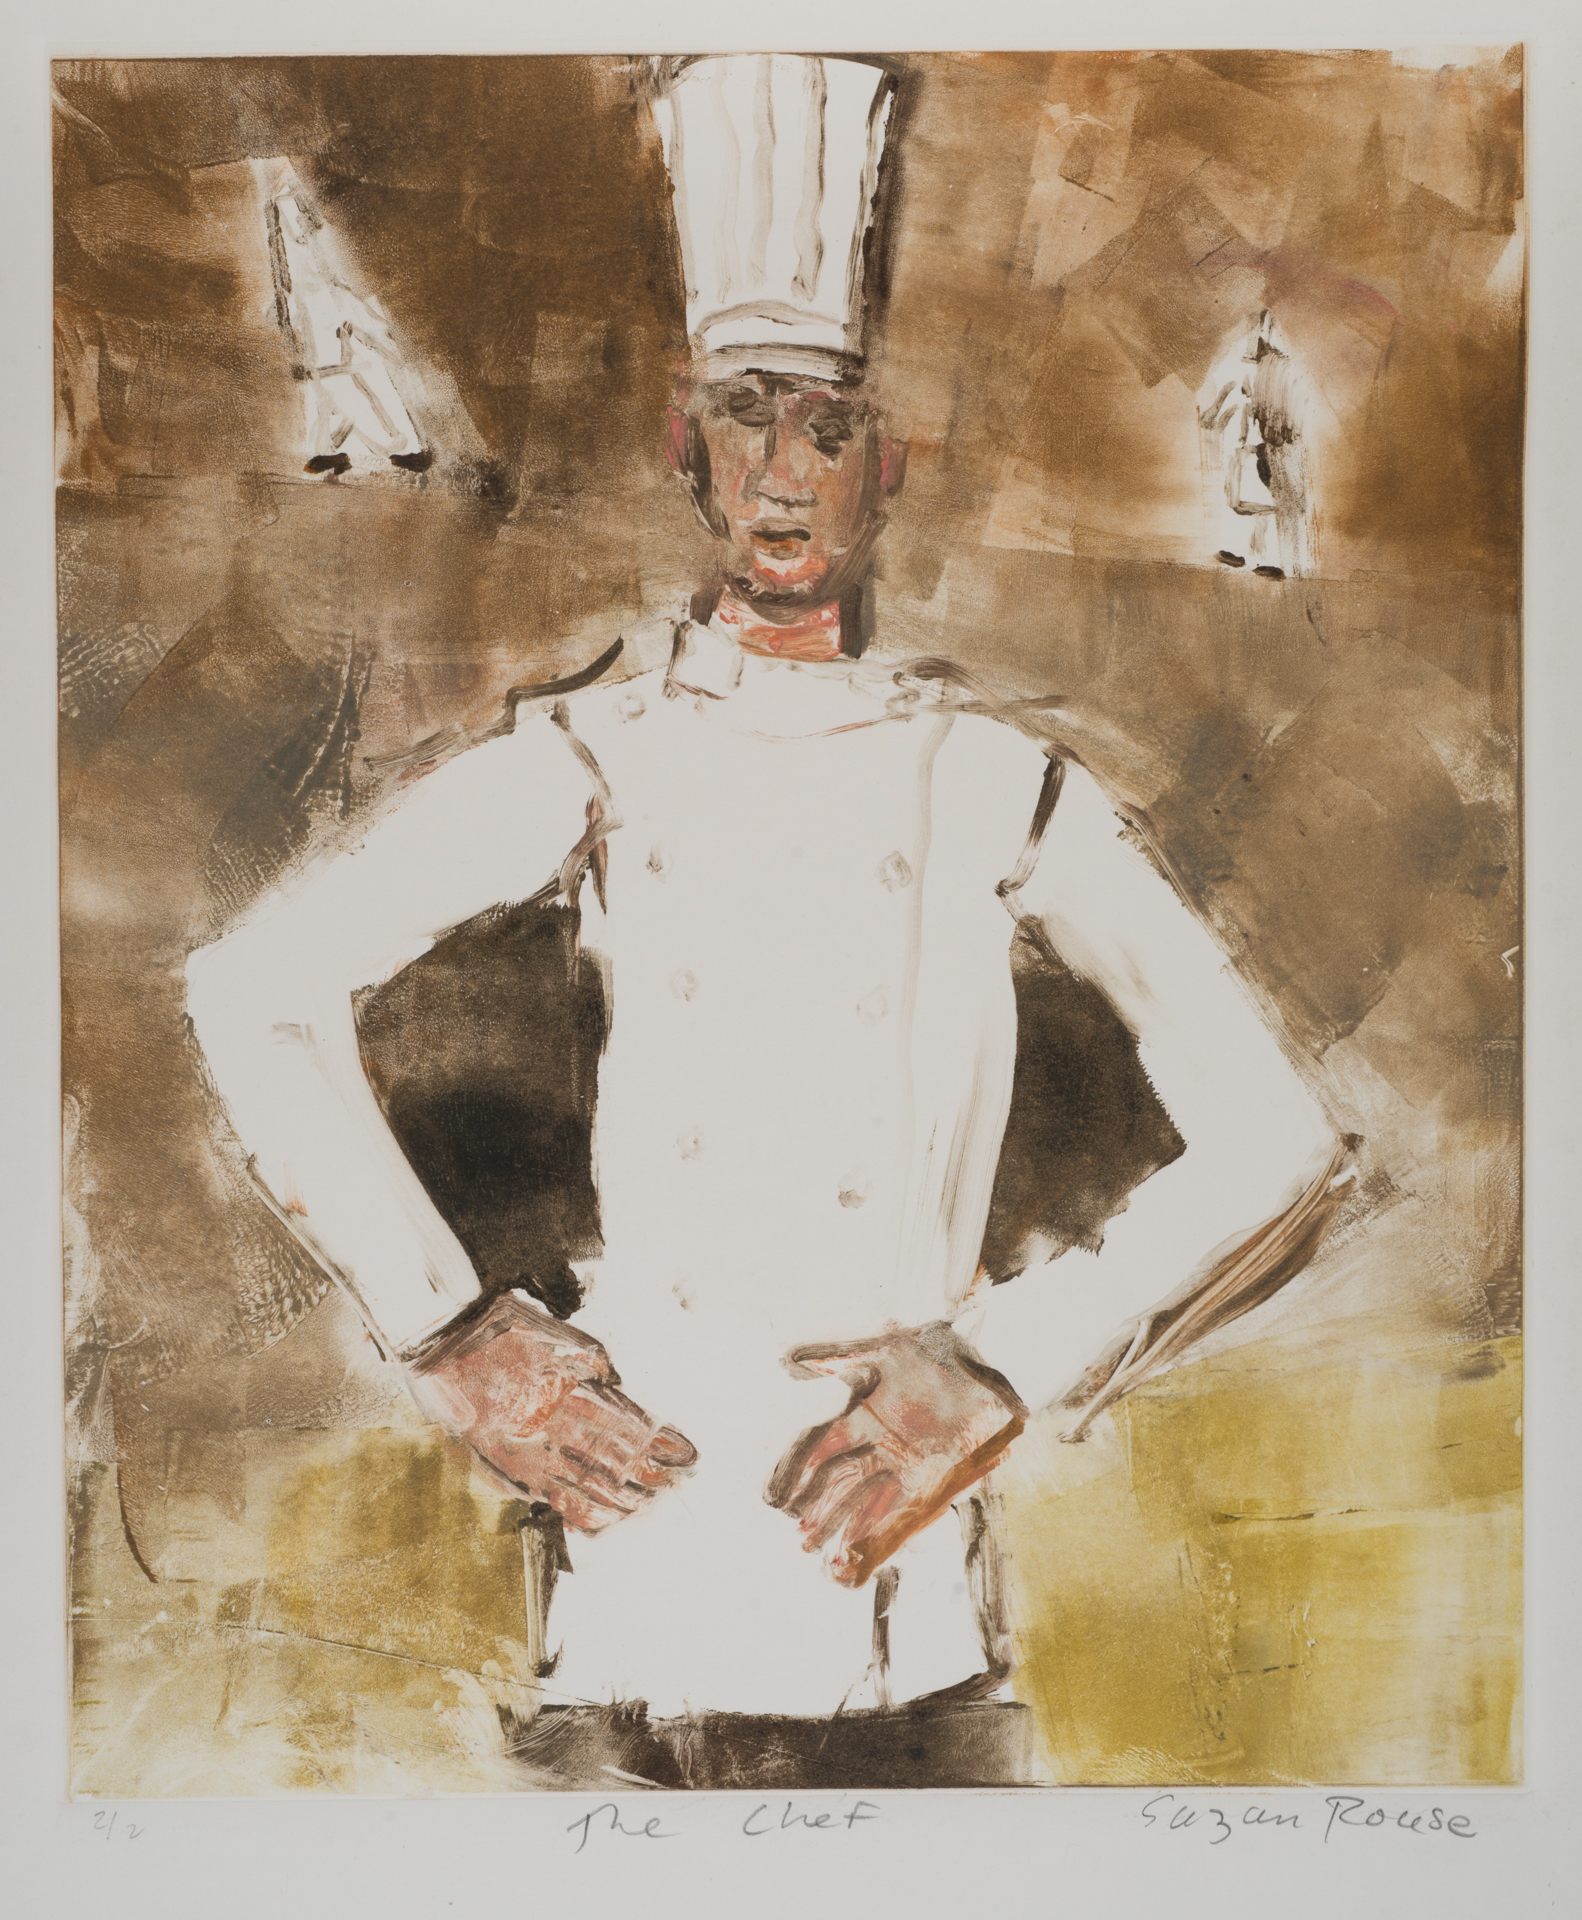 """The Chef"", monoprint and oil, 26""x20"", 2015"